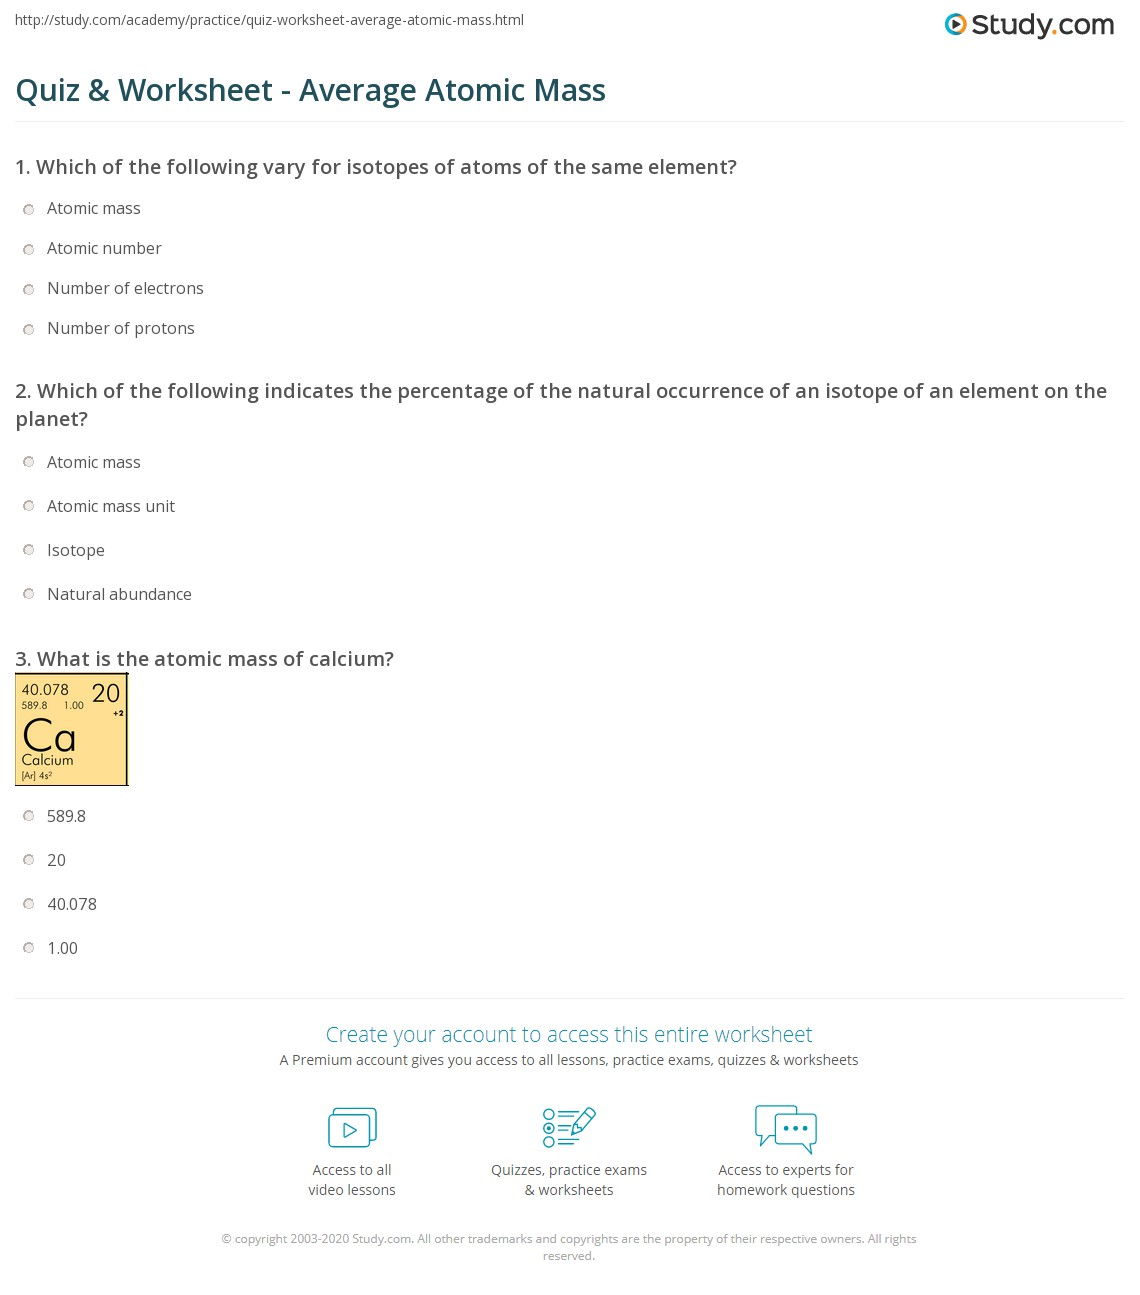 Quiz Worksheet Average Atomic Mass Study